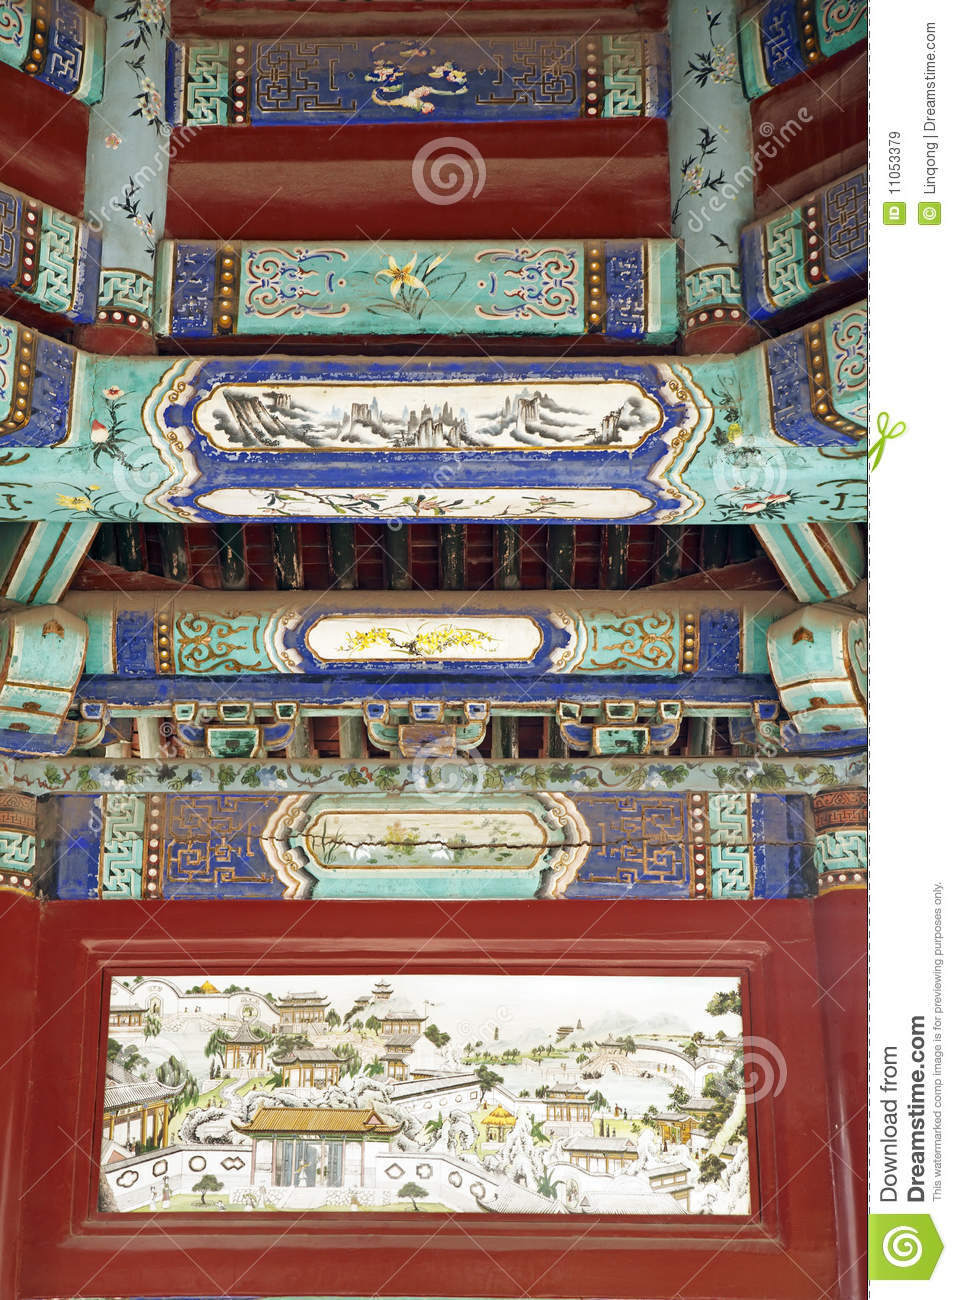 Ancient buildings decoration royalty free stock images for Ancient decoration